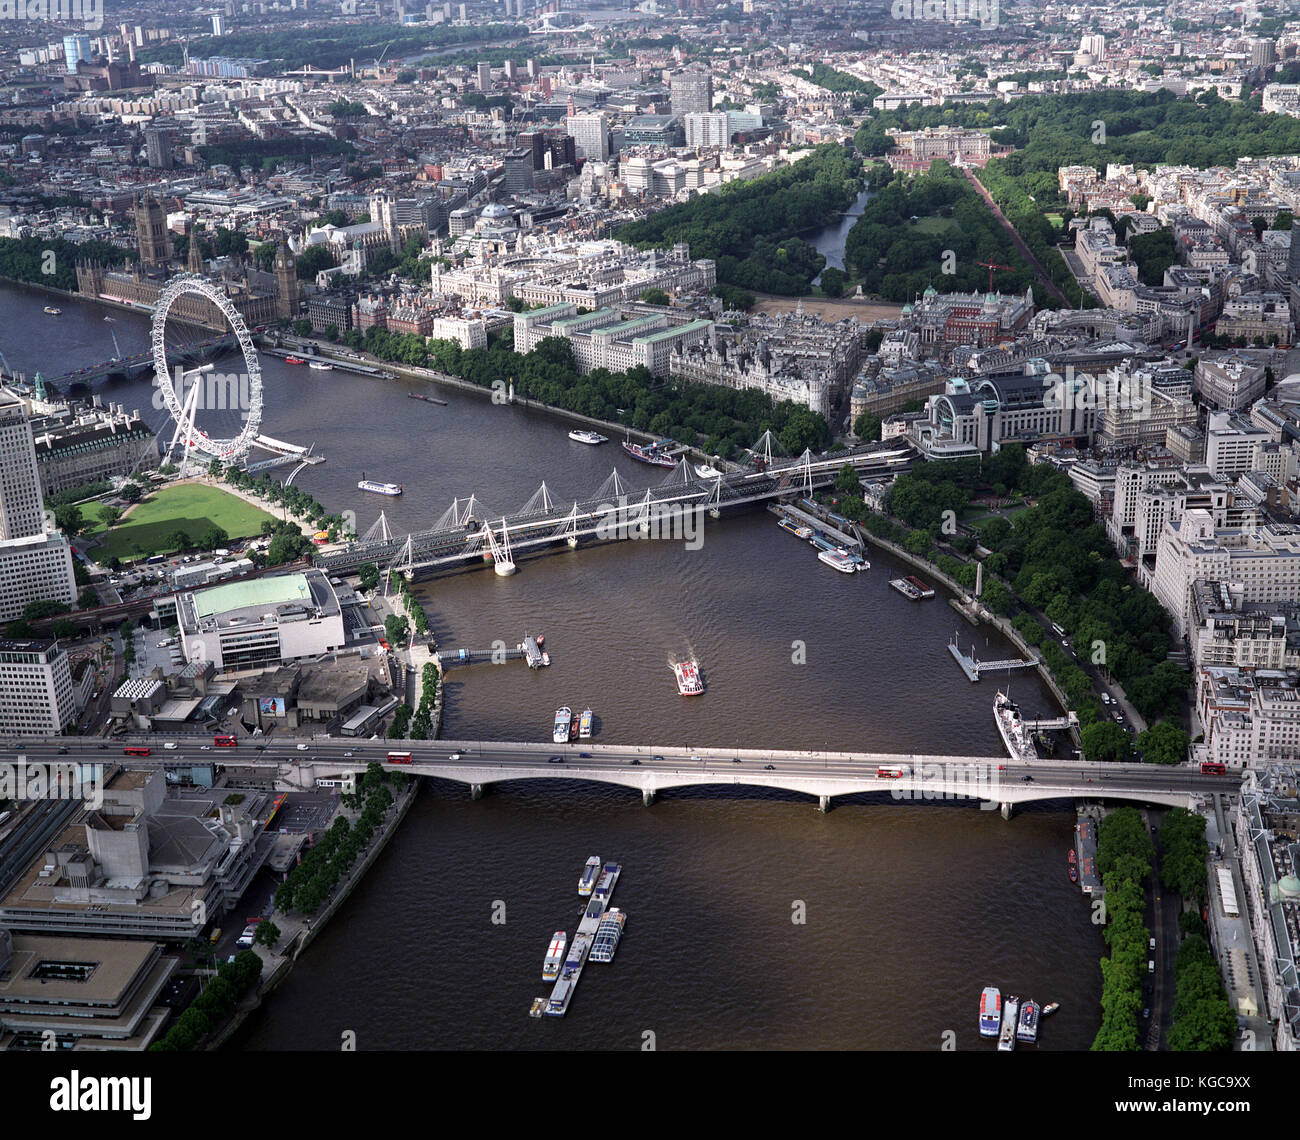 A aerial view of London showing the River Thames, , the Houses of Parliament, Big Ben, The London Eye, Charing Cross Stock Photo